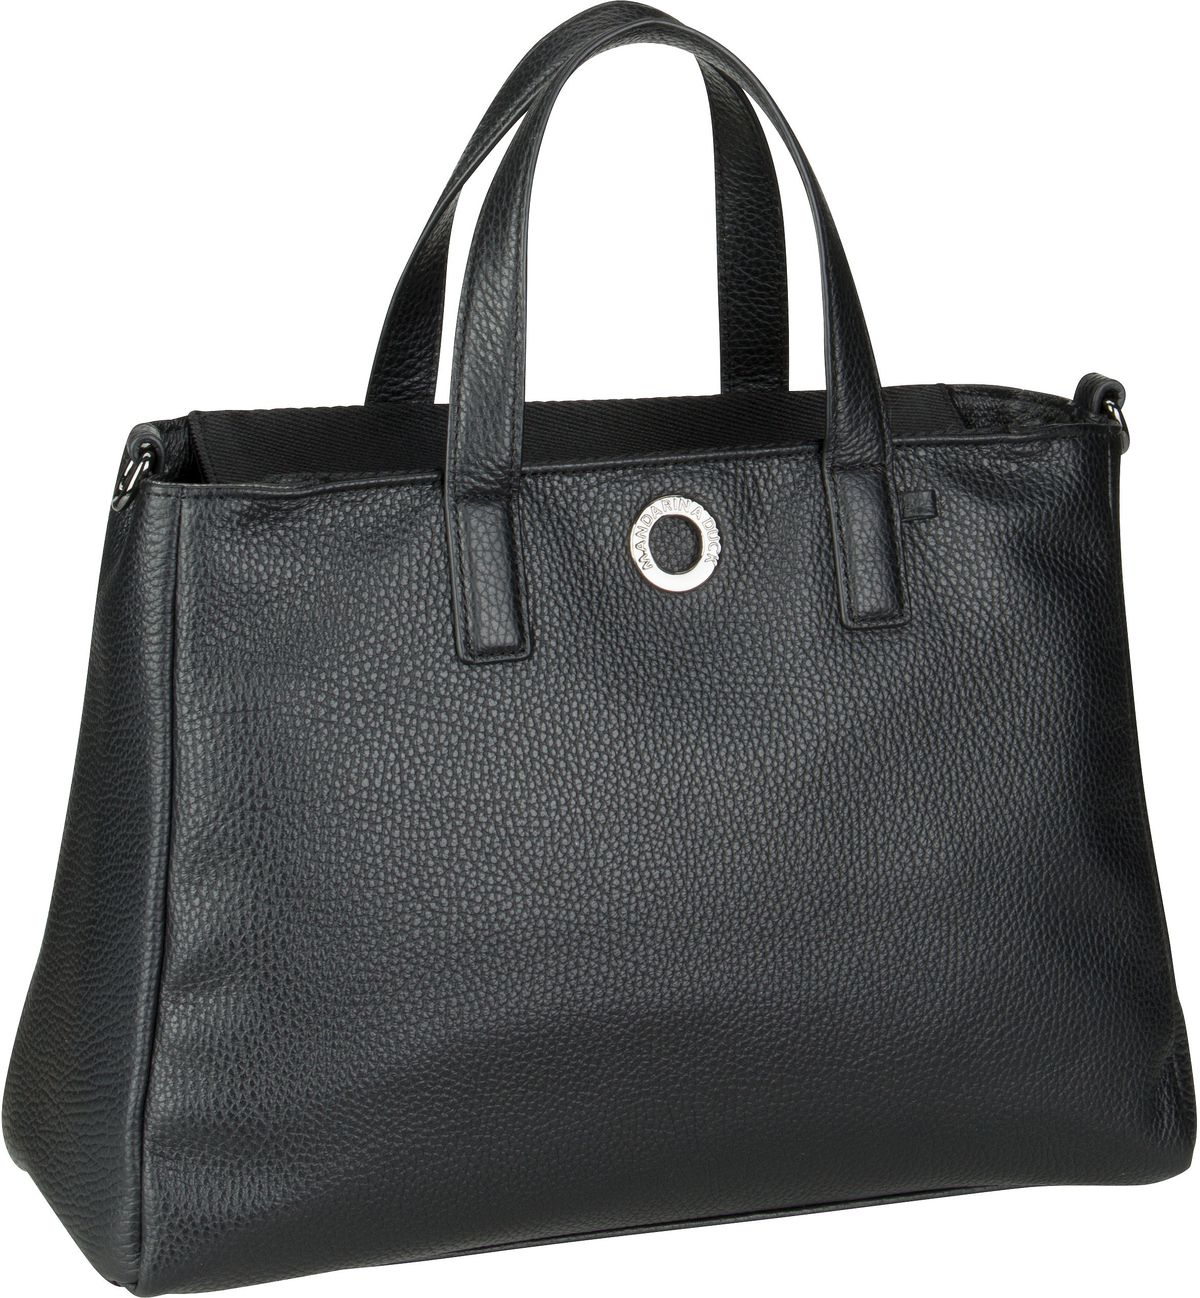 Handtasche Mellow Leather Tote Bag FZT26 Nero